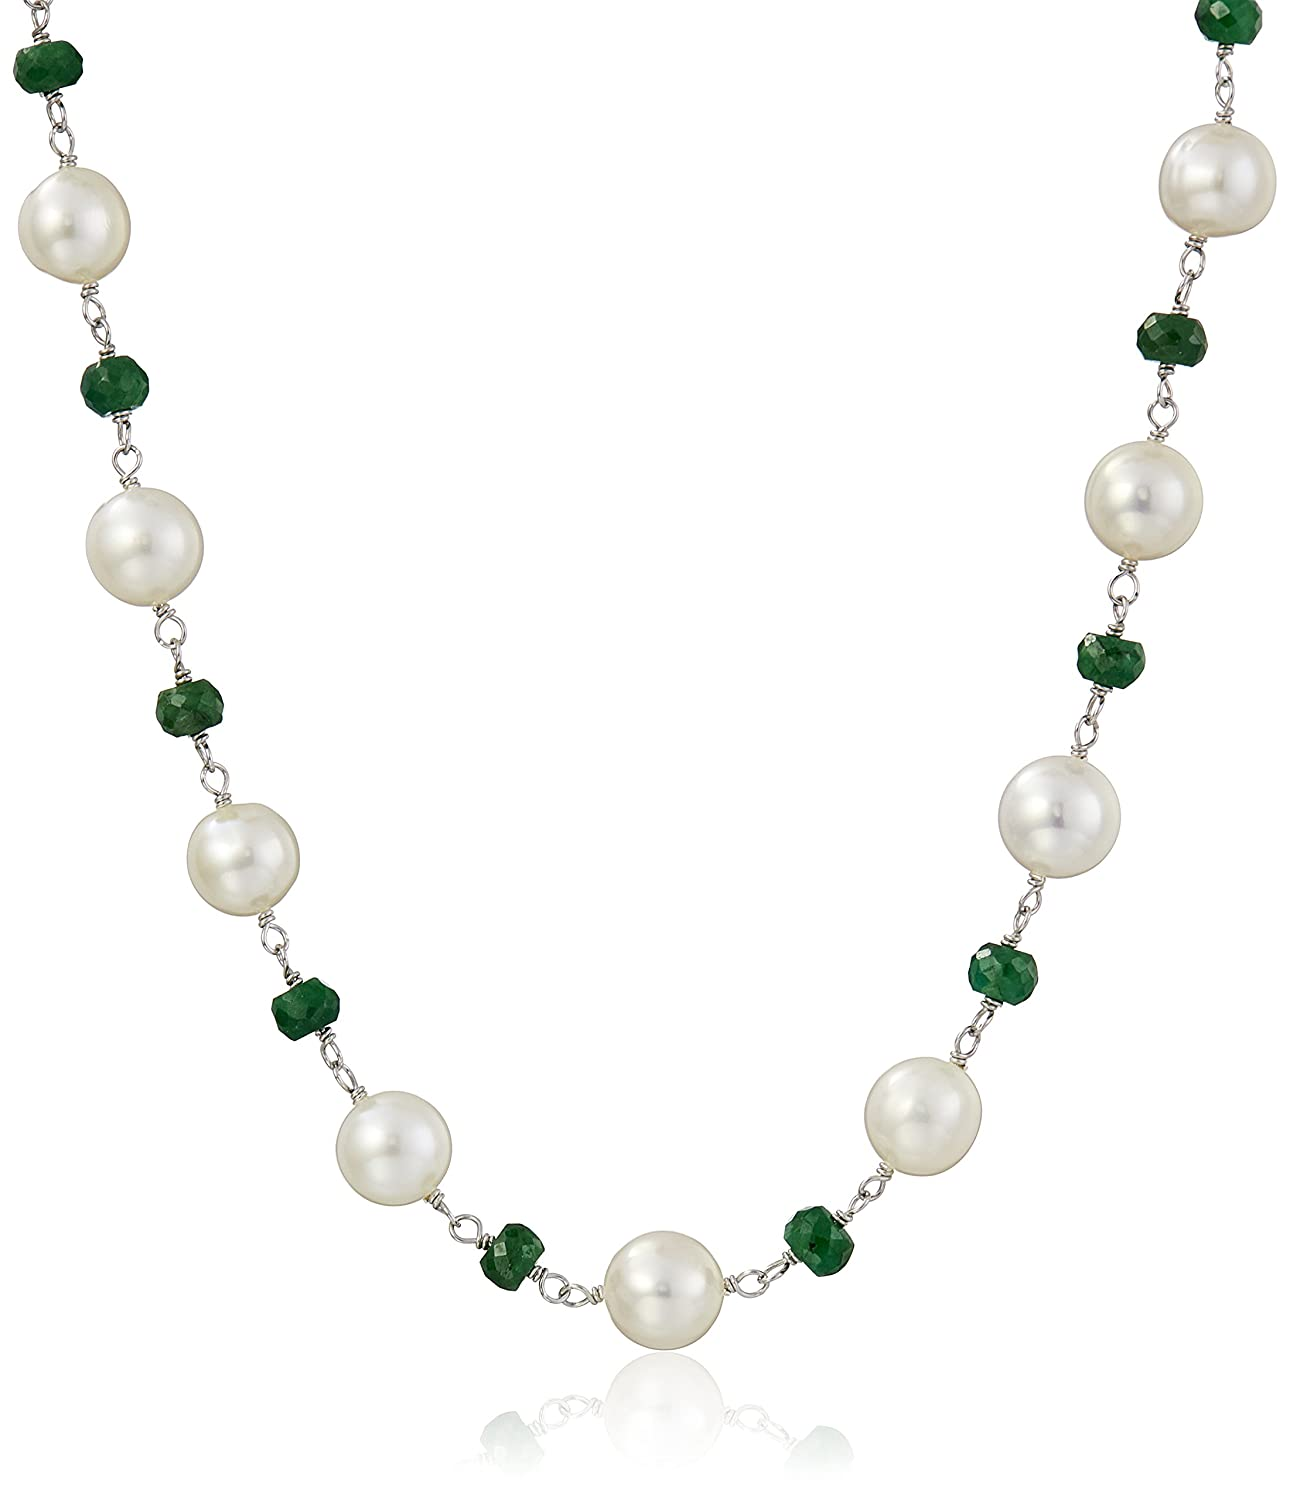 Sterling Silver 8-9mm White Cultured Freshwater Pearl and 4-5mm Link Strand Necklace, 18 18 Amazon Collection ND637-6-01